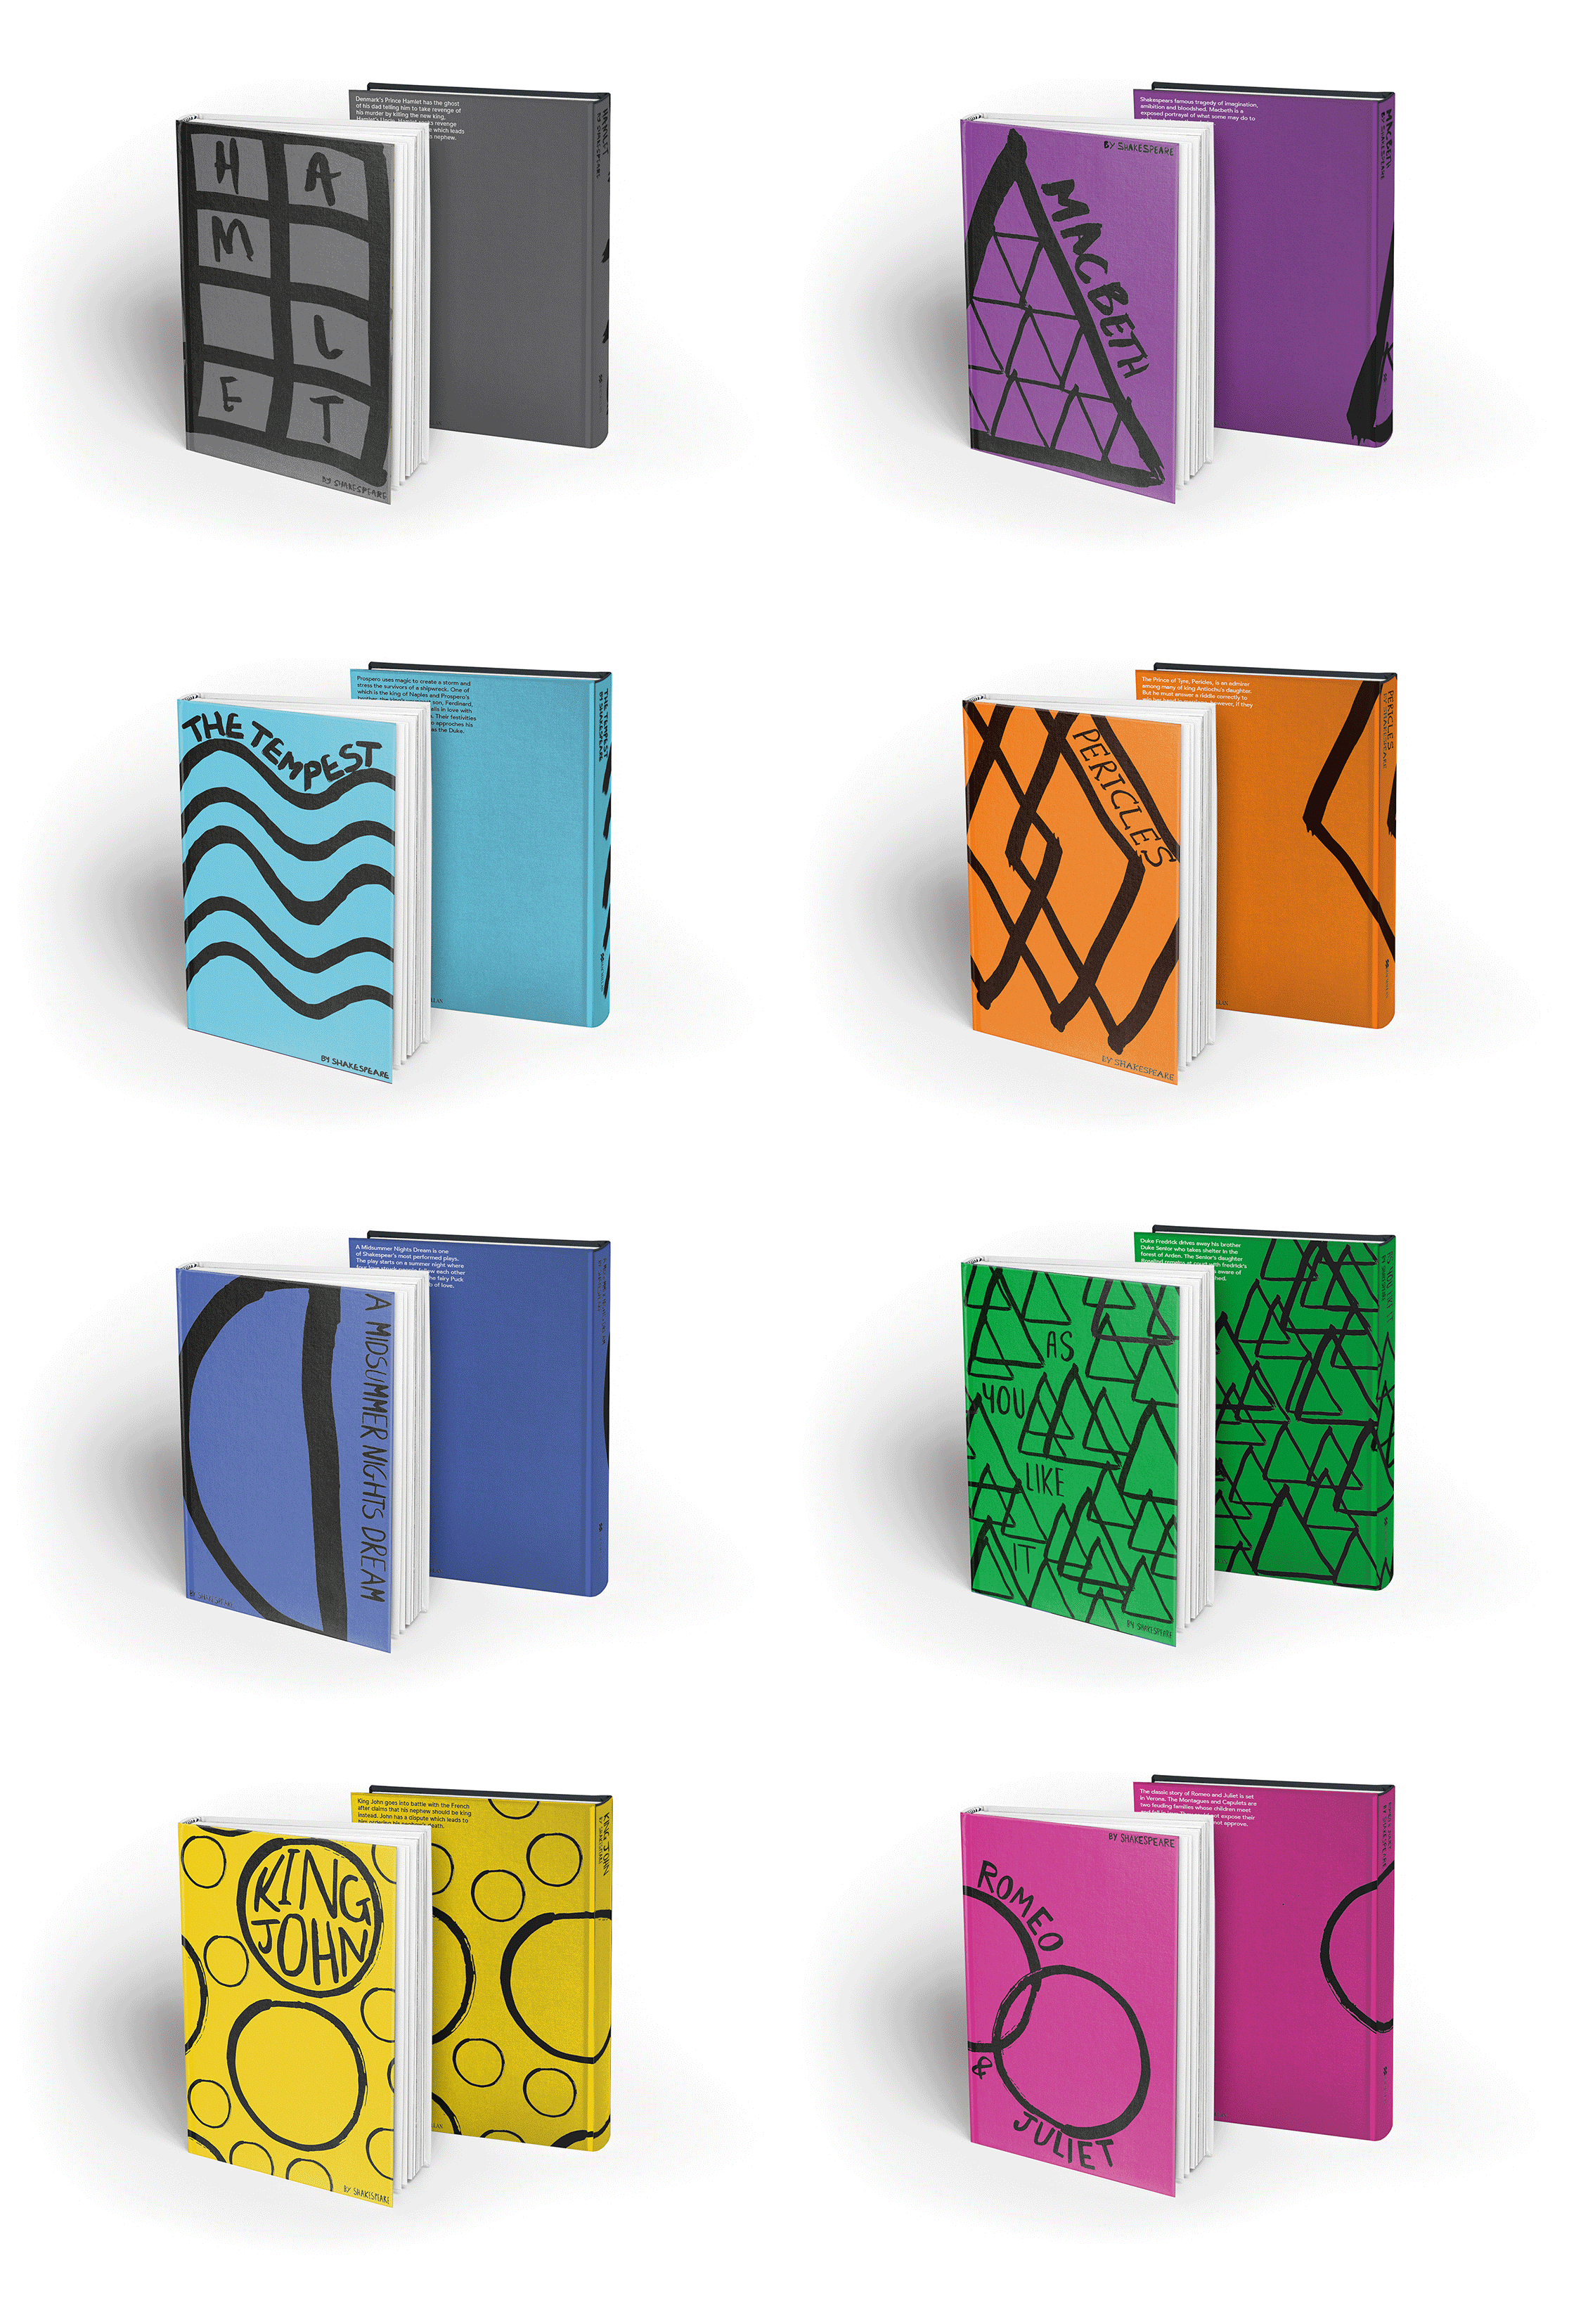 mock-up of Shakespeare book covers